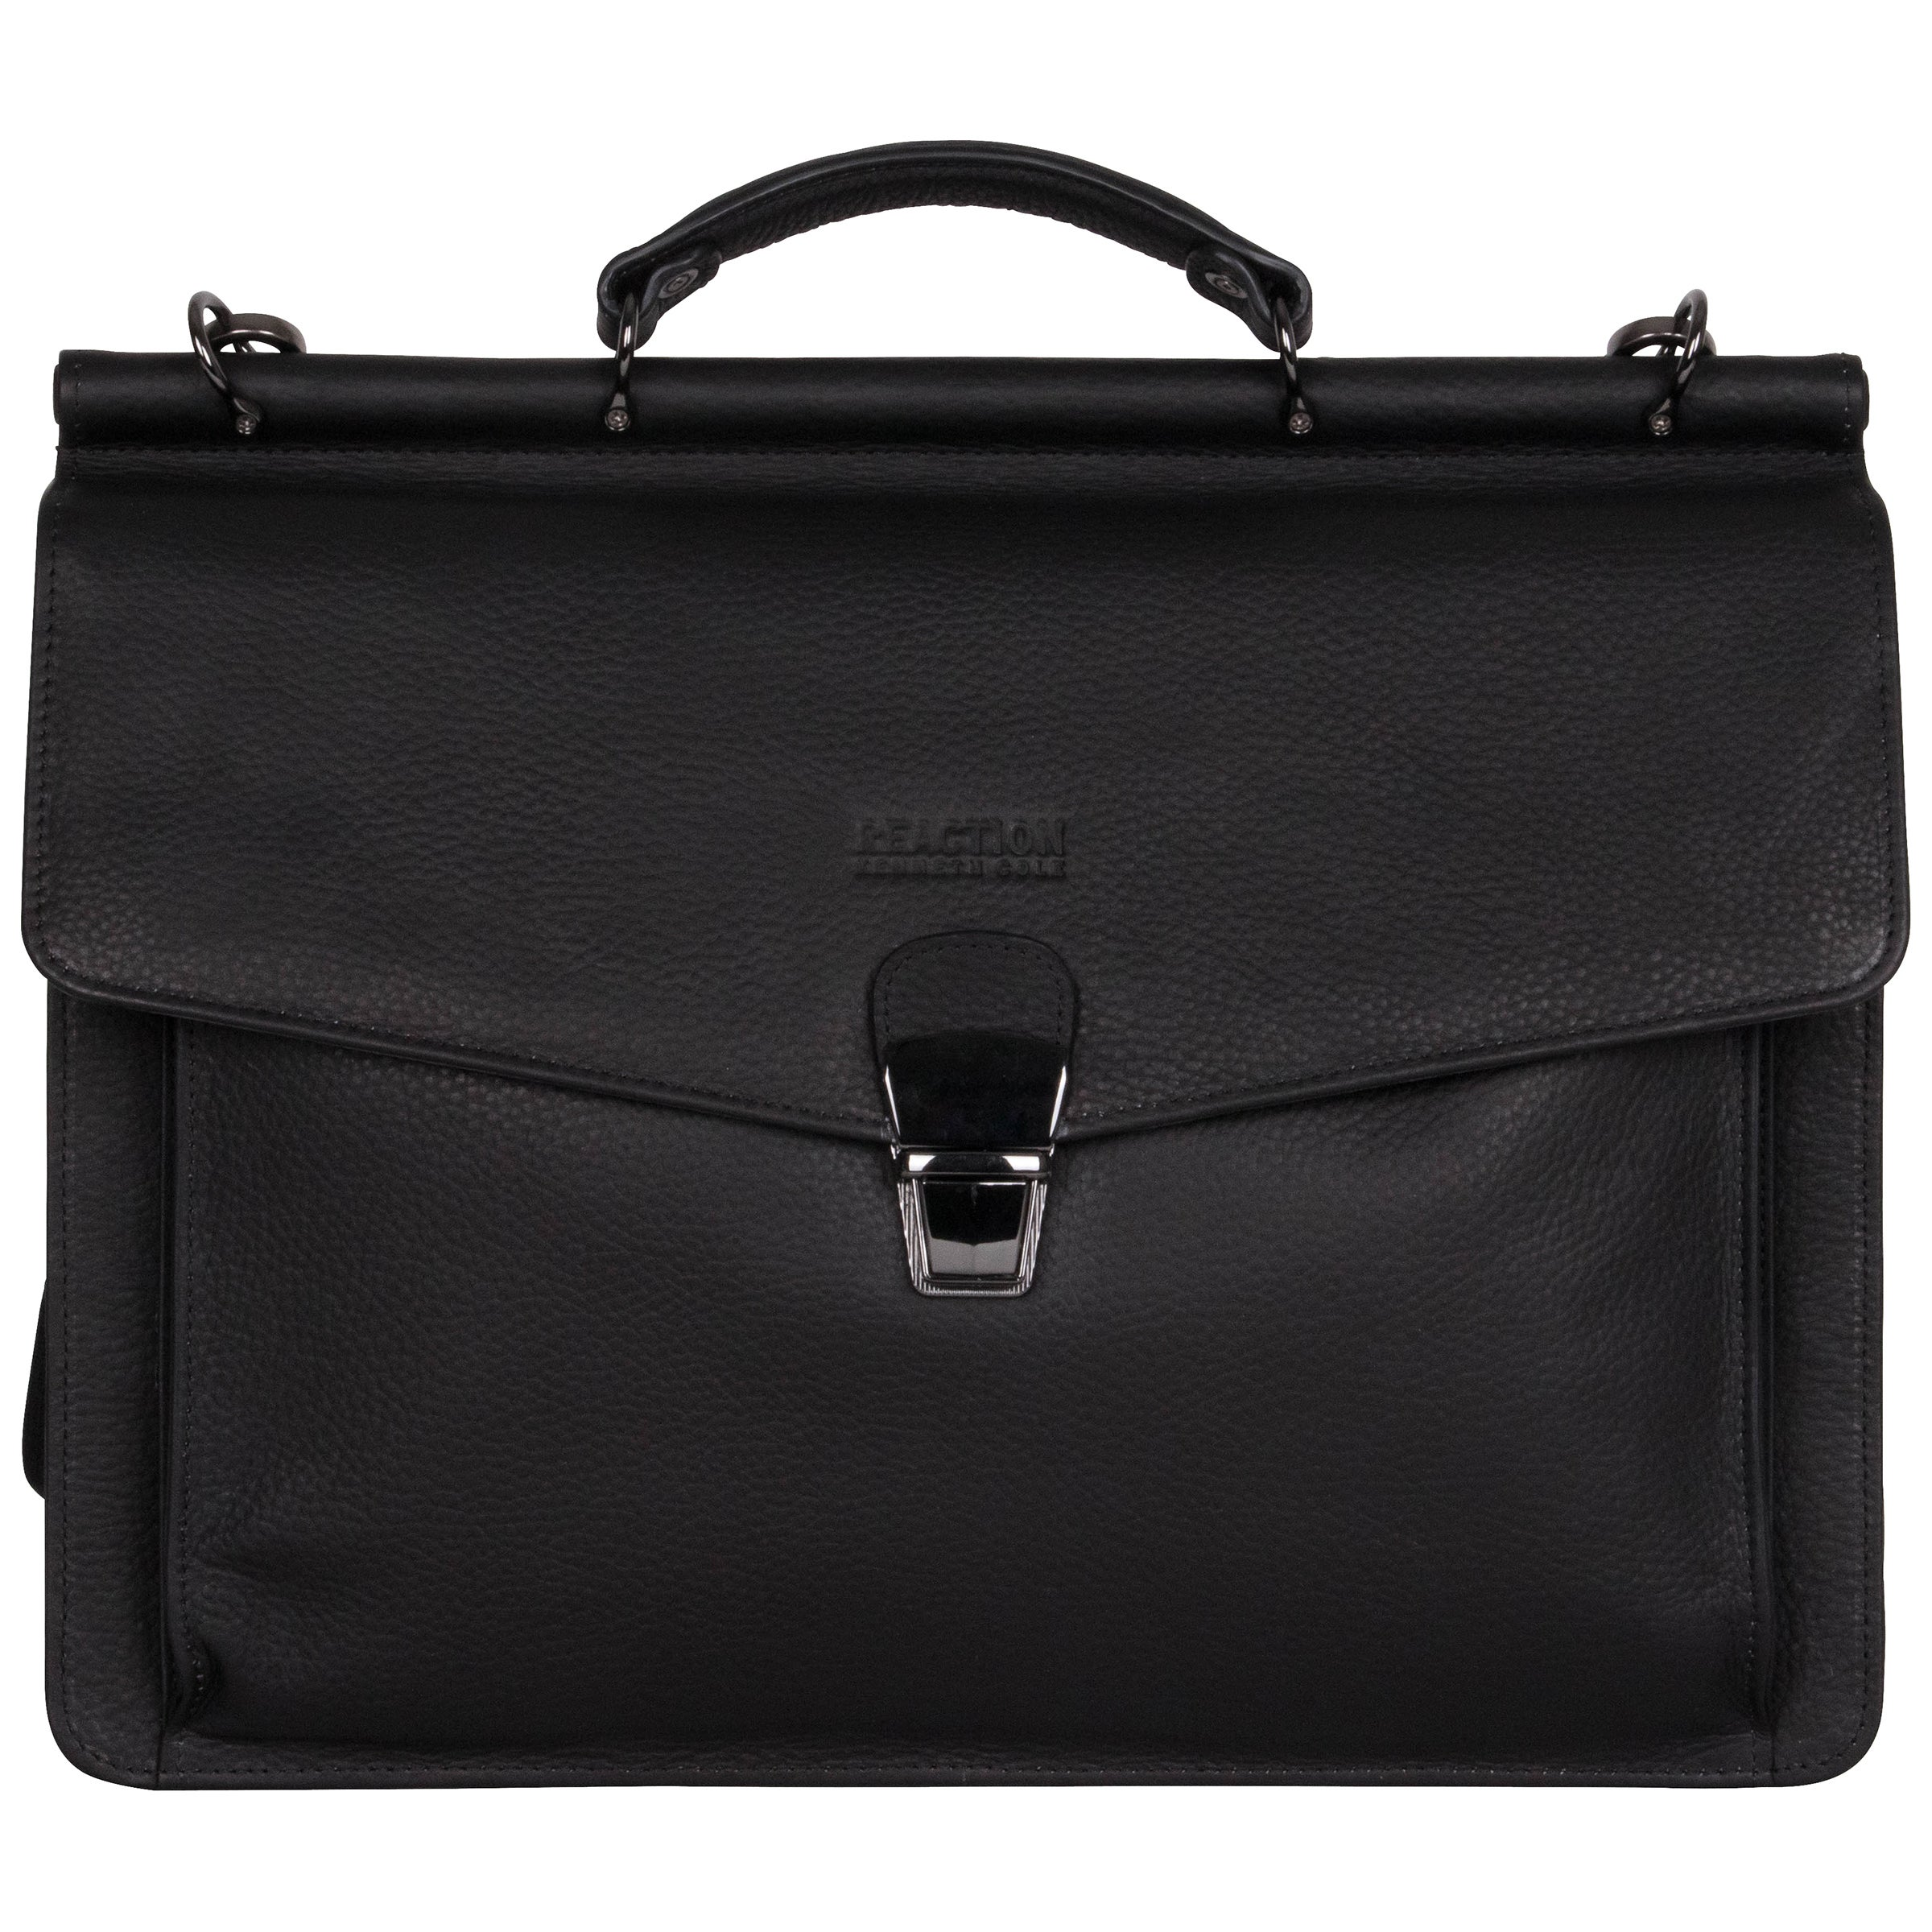 Kenneth Cole Reaction Pebbled Colombian Leather Flapover 15-inch Laptop Bag 97af46d602